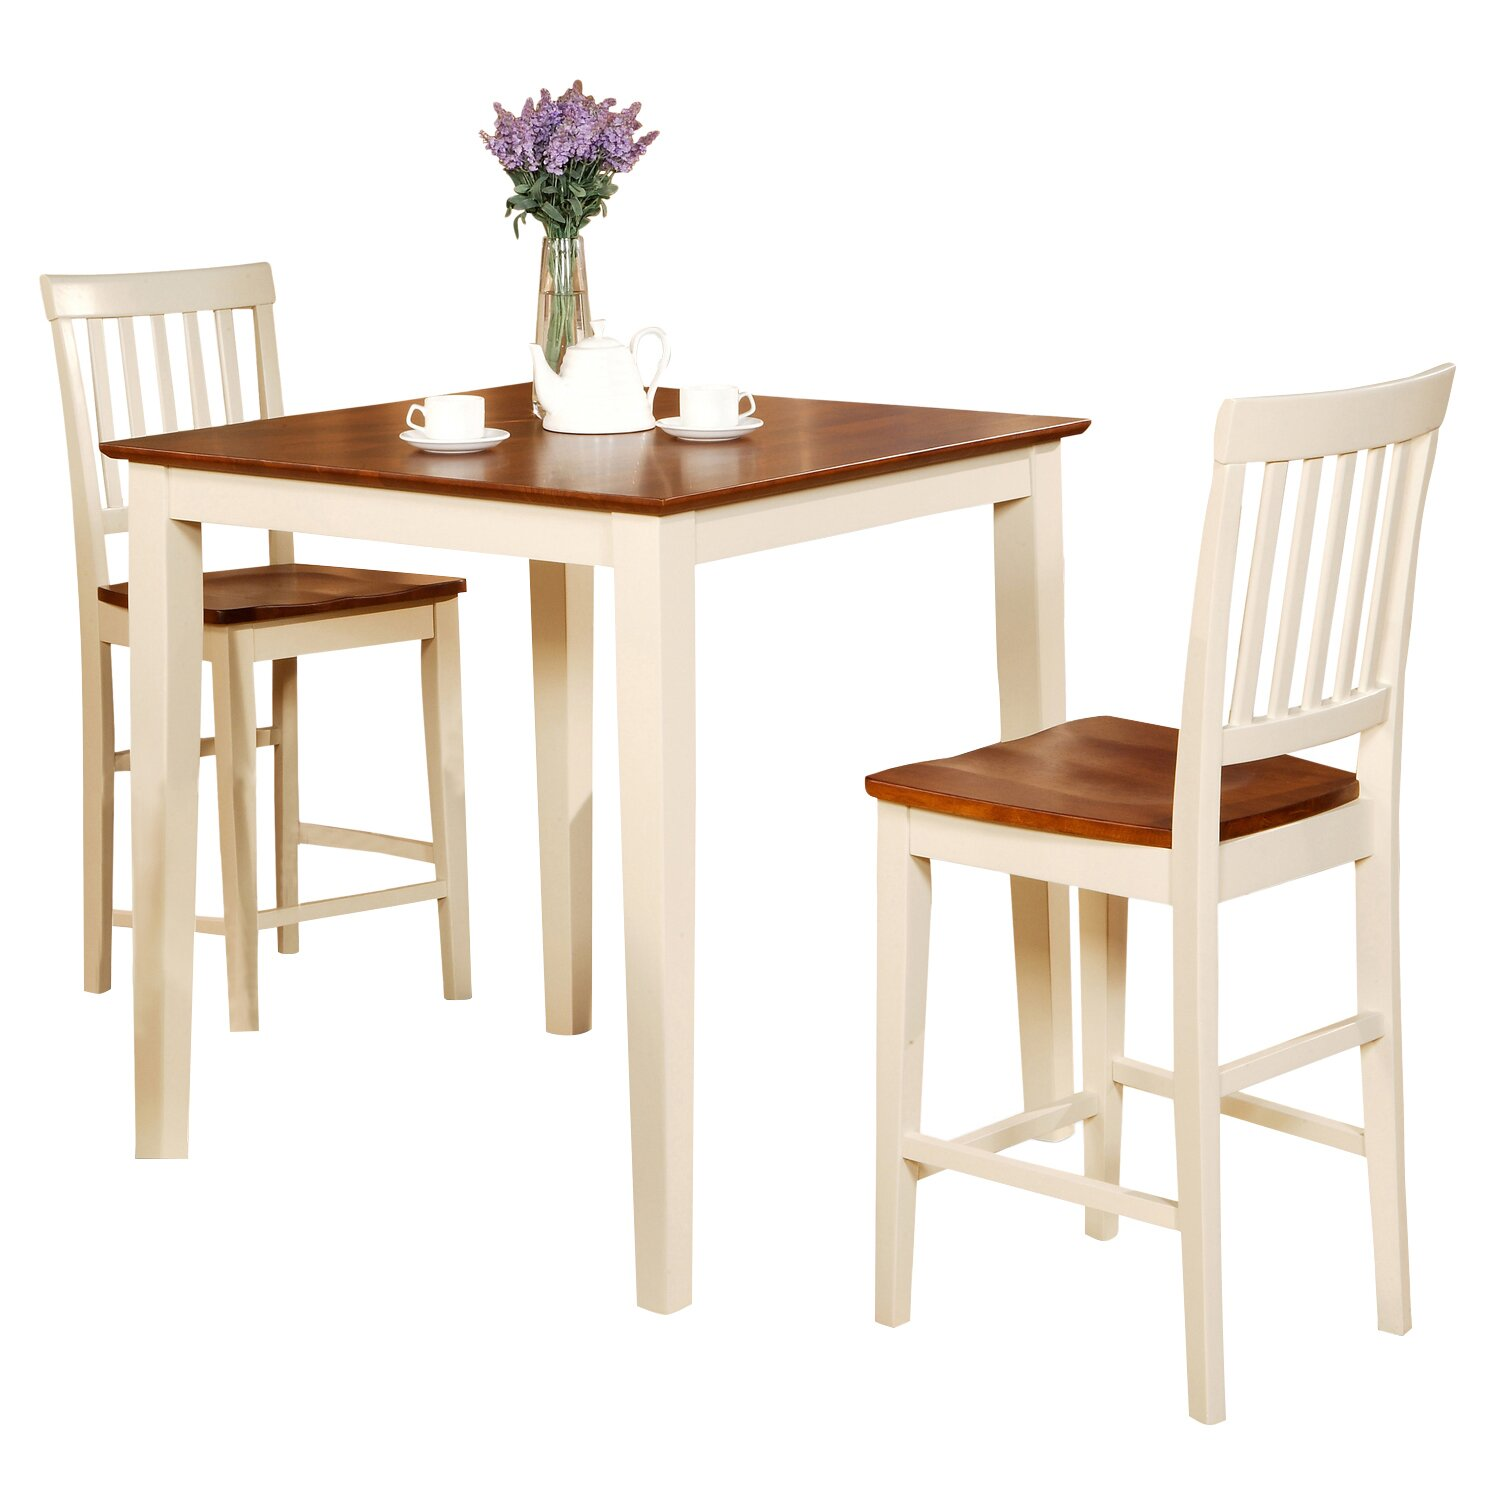 Wooden importers vernon 3 piece counter height dining set for Kitchen dining sets on sale